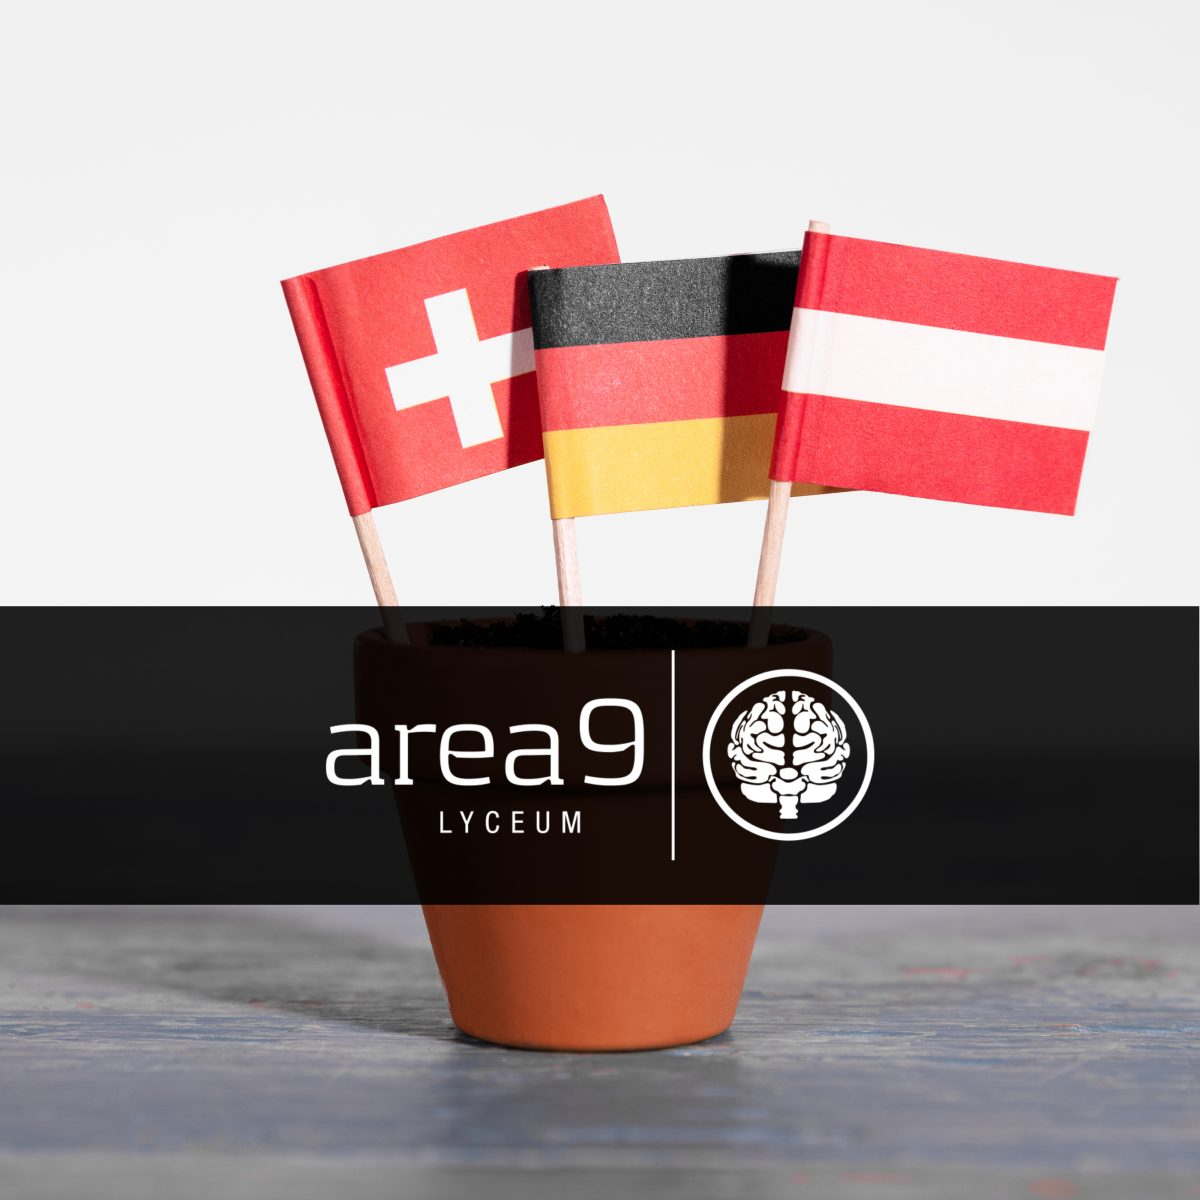 Area9 Lyceum Expands Area9 Rhapsode™ Platform – Germany, Austria and Switzerland